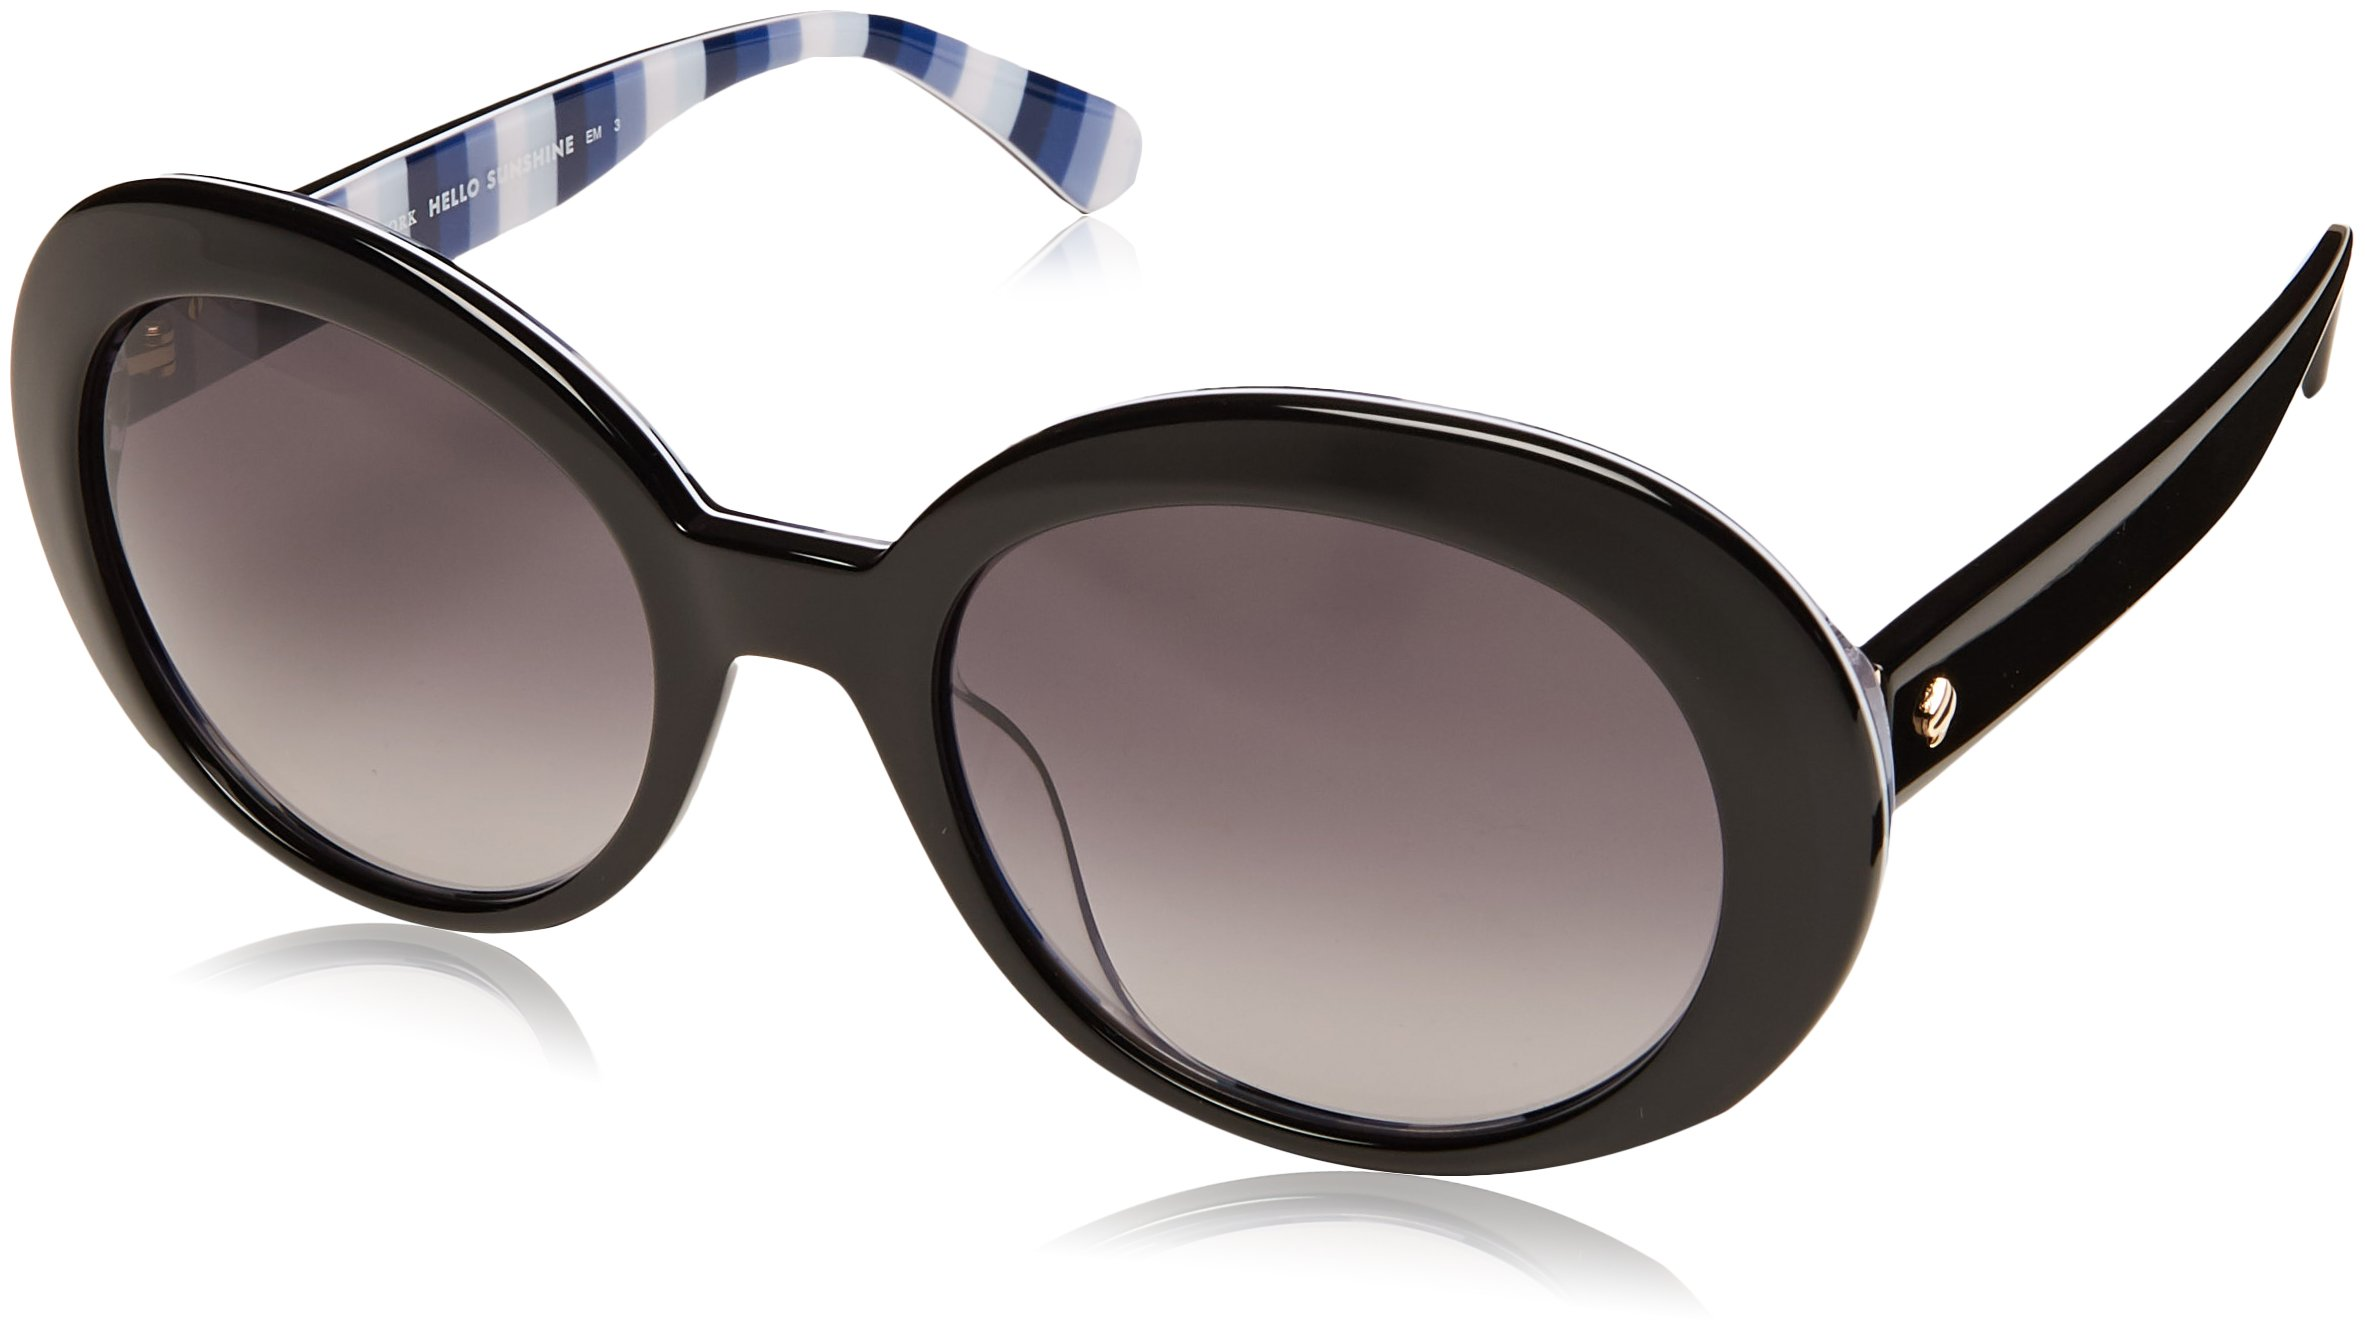 Kate Spade Women's Cindra/s Round Sunglasses, Black, 54 mm by Kate Spade New York